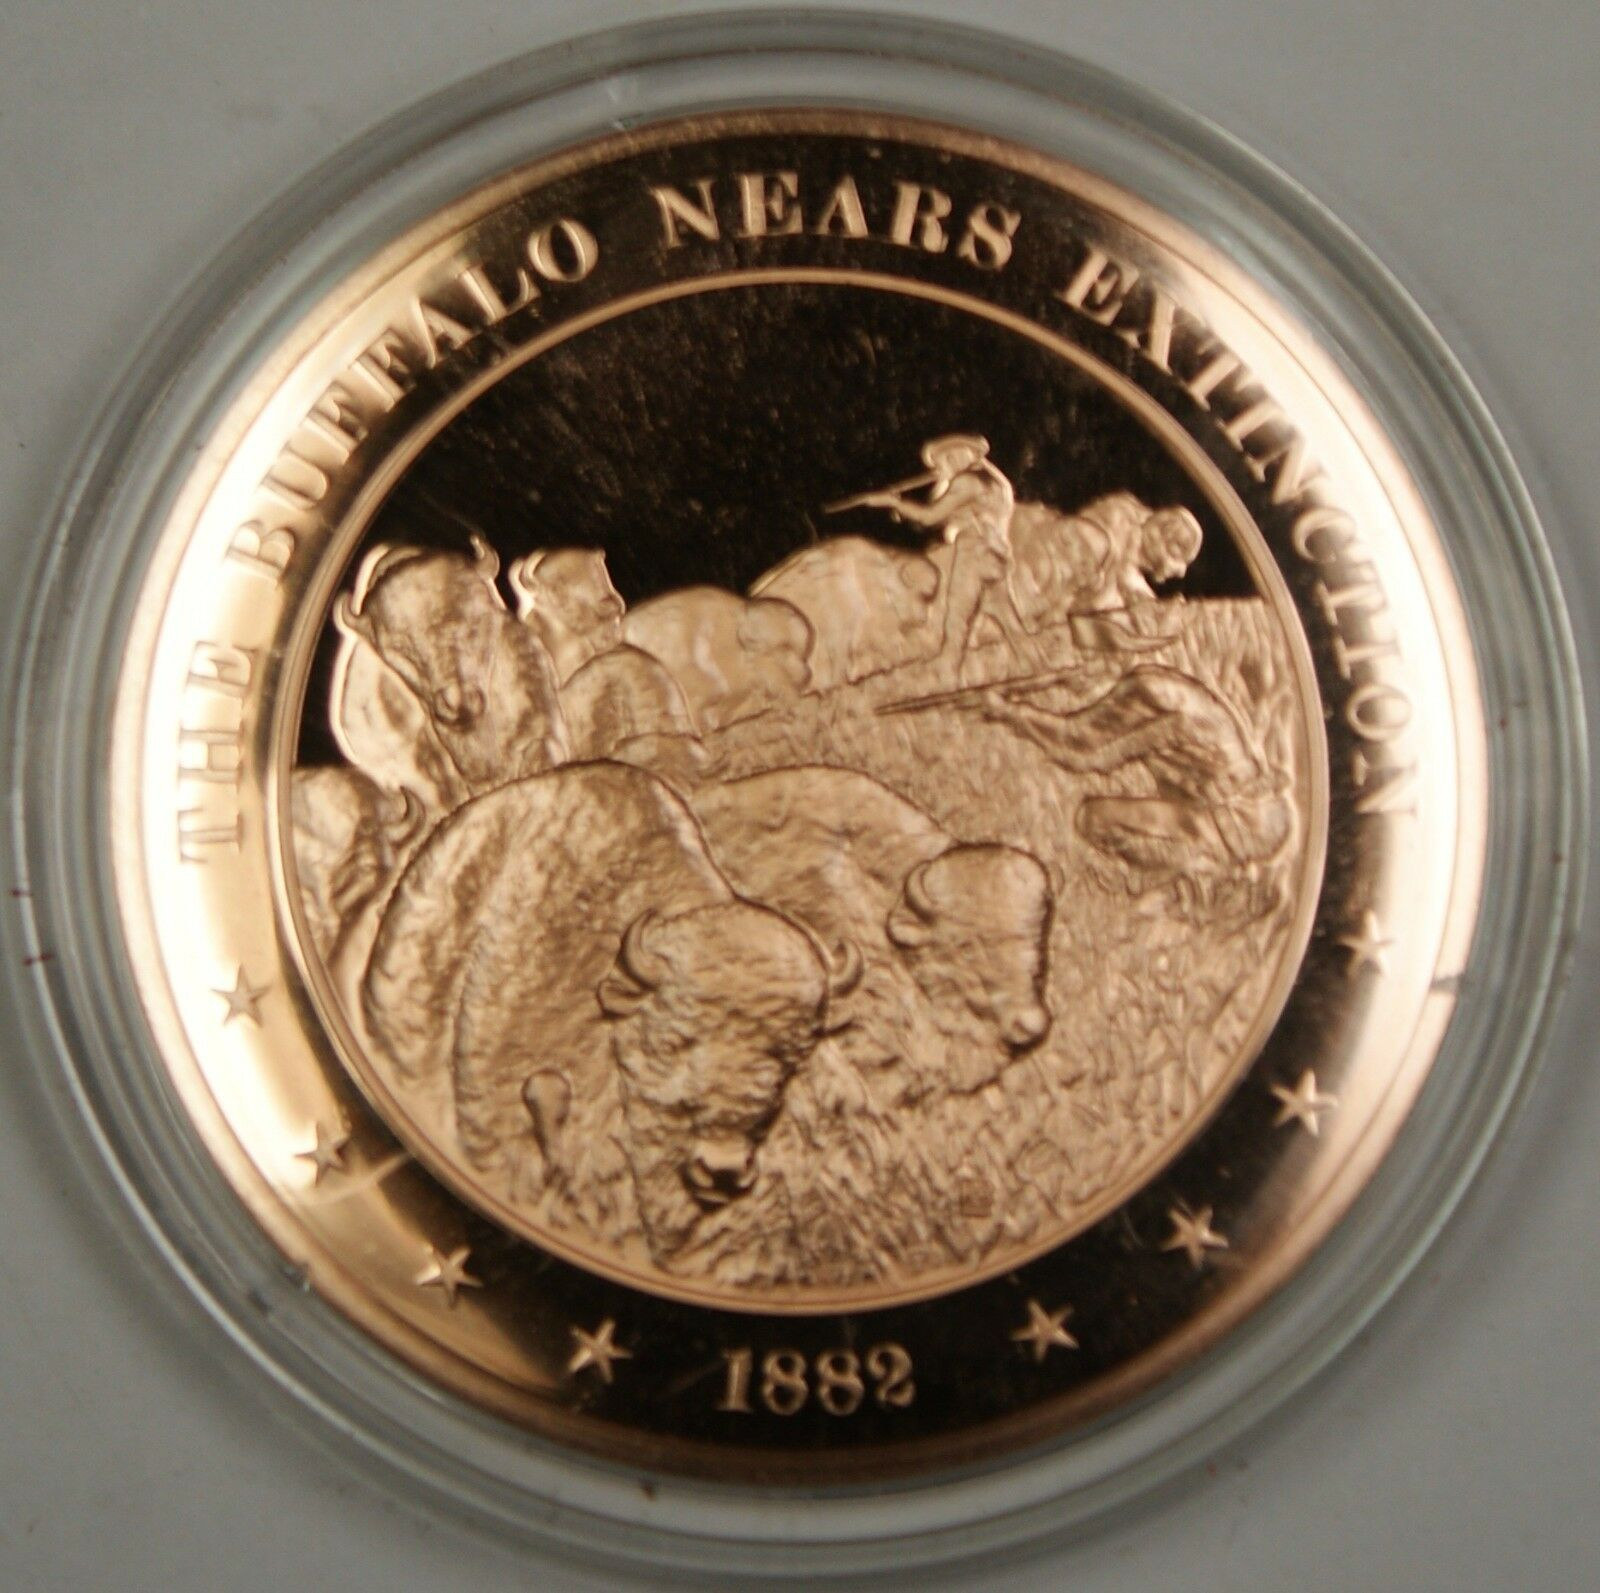 Bronze Proof Medal The Buffalo Nears Extinction 1882